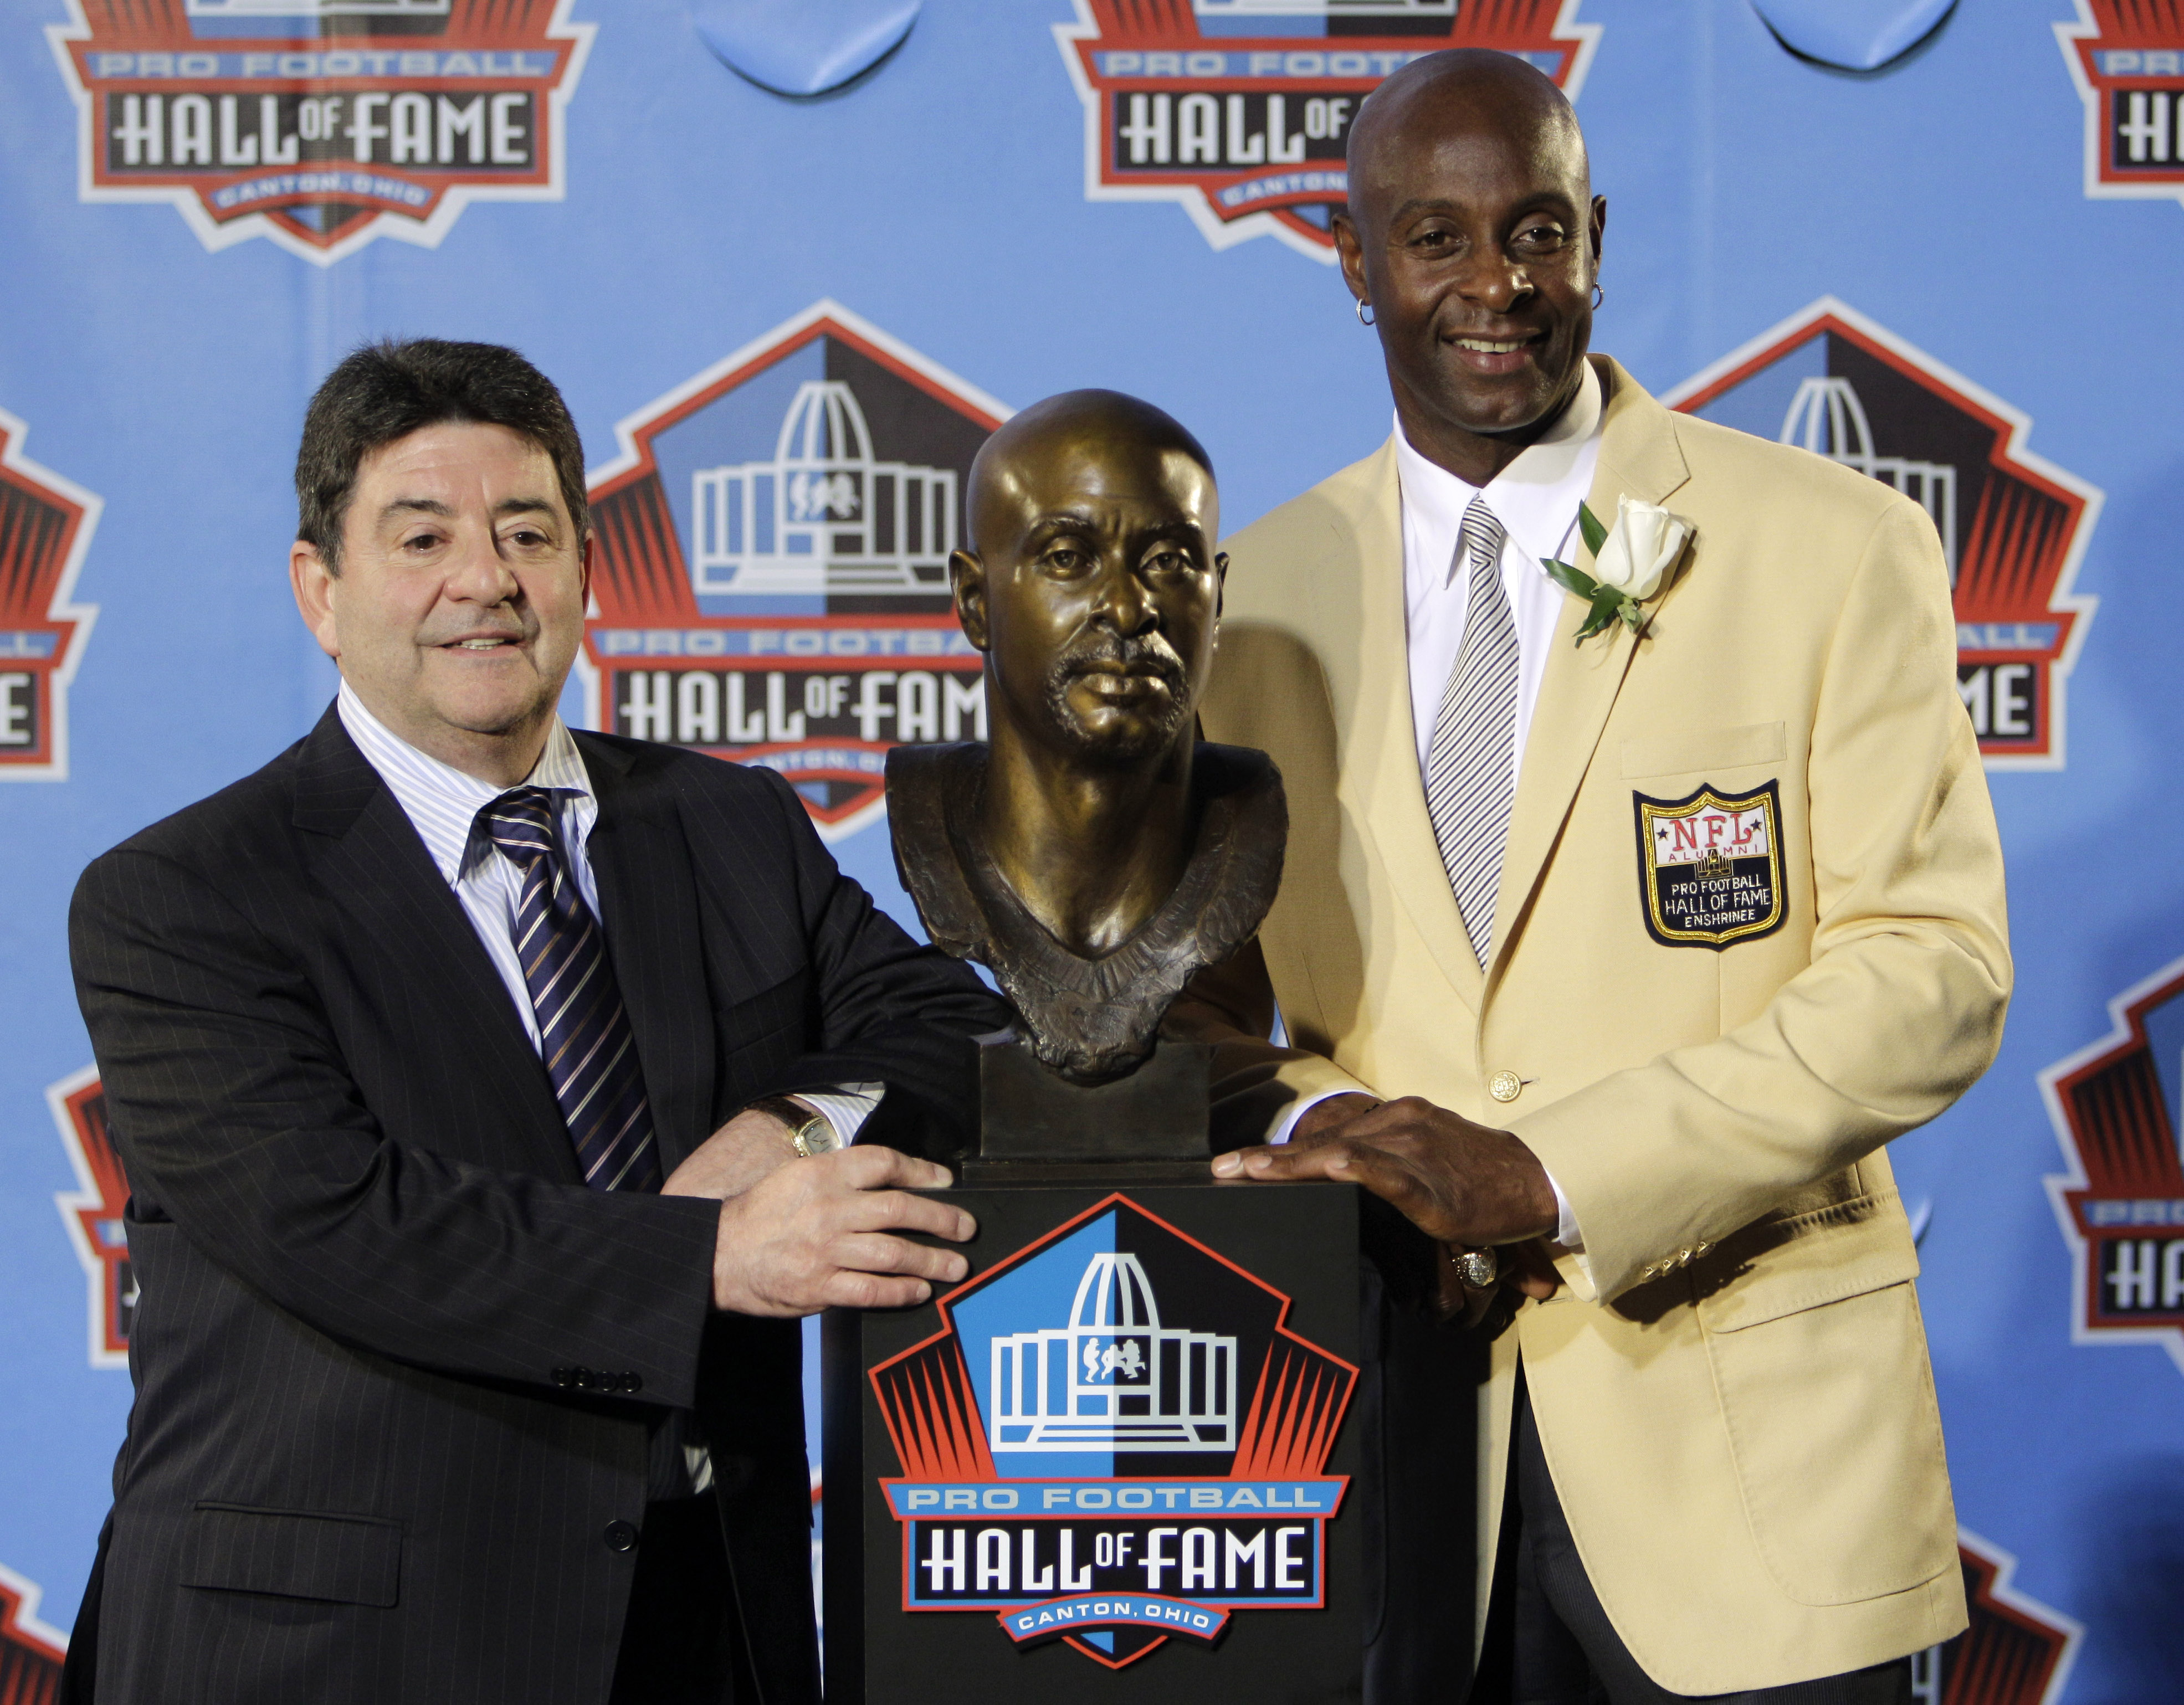 FILE - In this Aug. 7, 2010, file photo, former San Francisco 49ers great Jerry Rice, right, poses with former 49ers owner Edward DeBartolo Jr. after Rice's enshrinement in the Pro Football Hall of Fame in Canton, Ohio. DeBartolo played no favorites. When